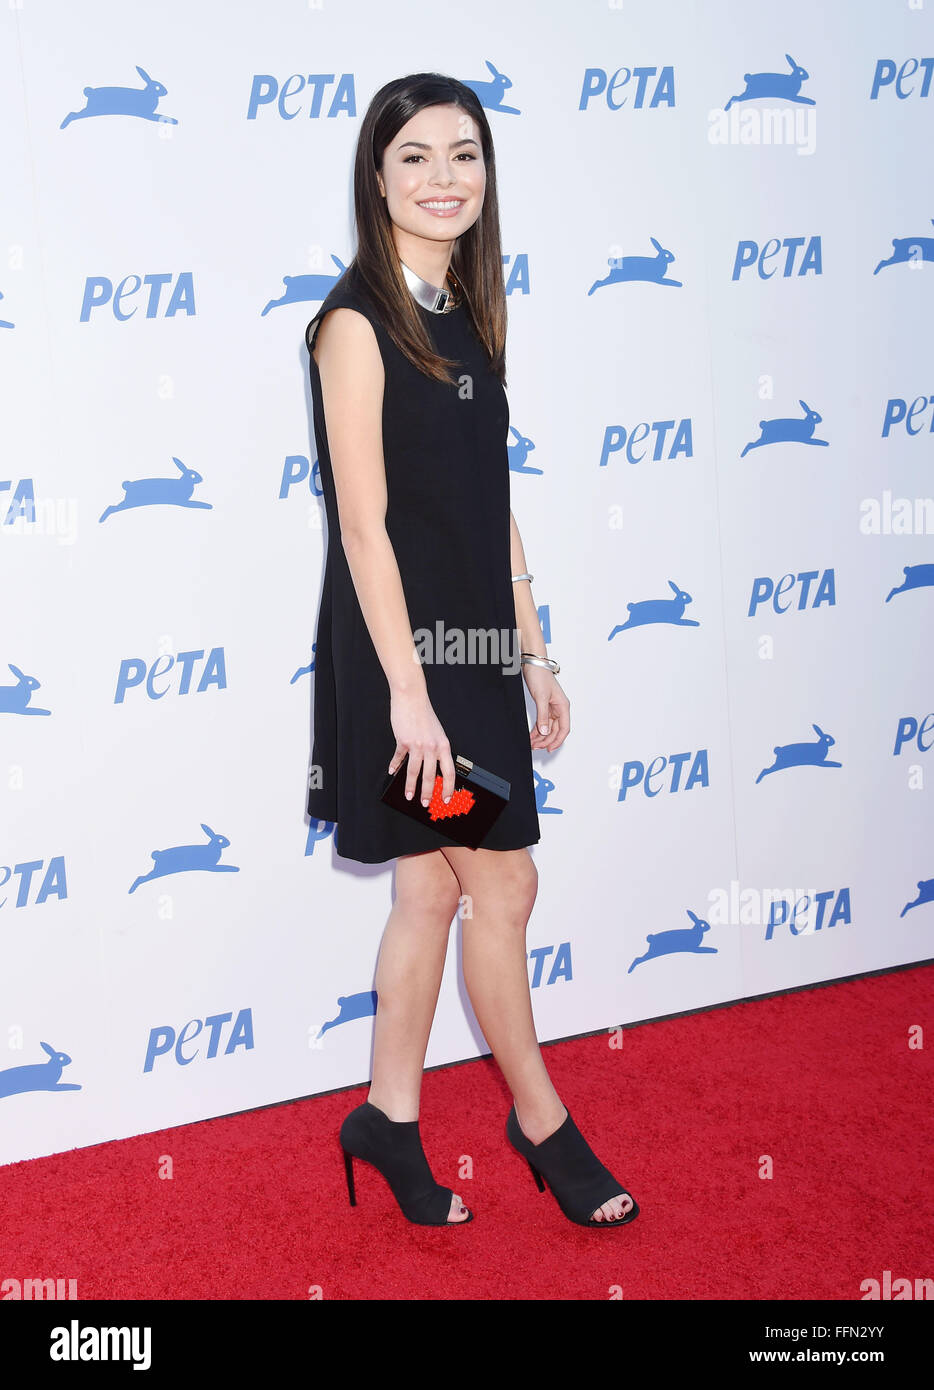 Actress Miranda Cosgrove arrives at PETA's 35th Anniversary Party at Hollywood Palladium on September 30, 2015 in Stock Photo